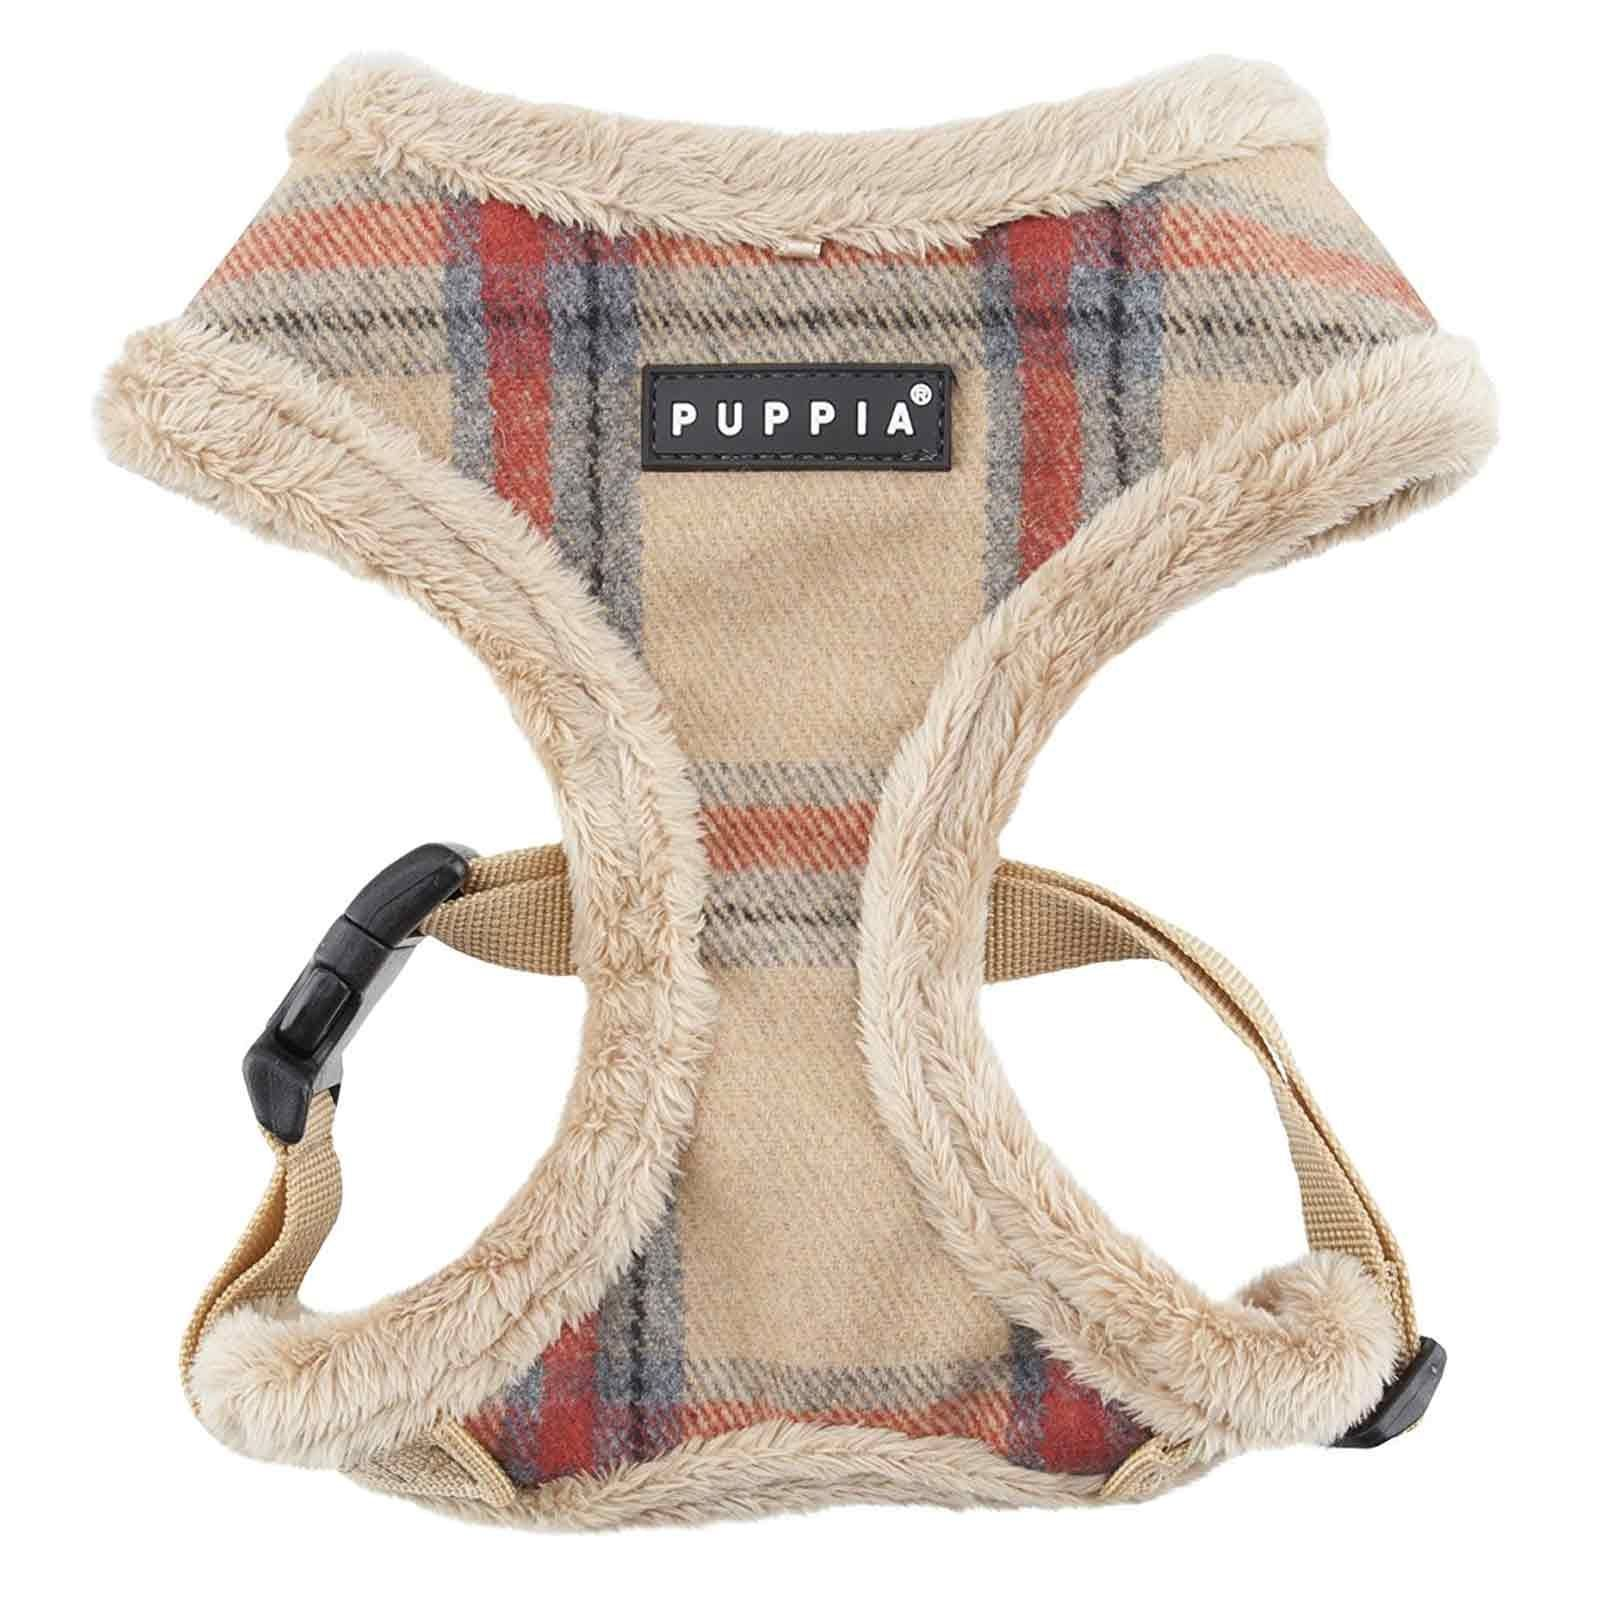 Puppia Kemp Dog Harness A Beige, one of our most popular